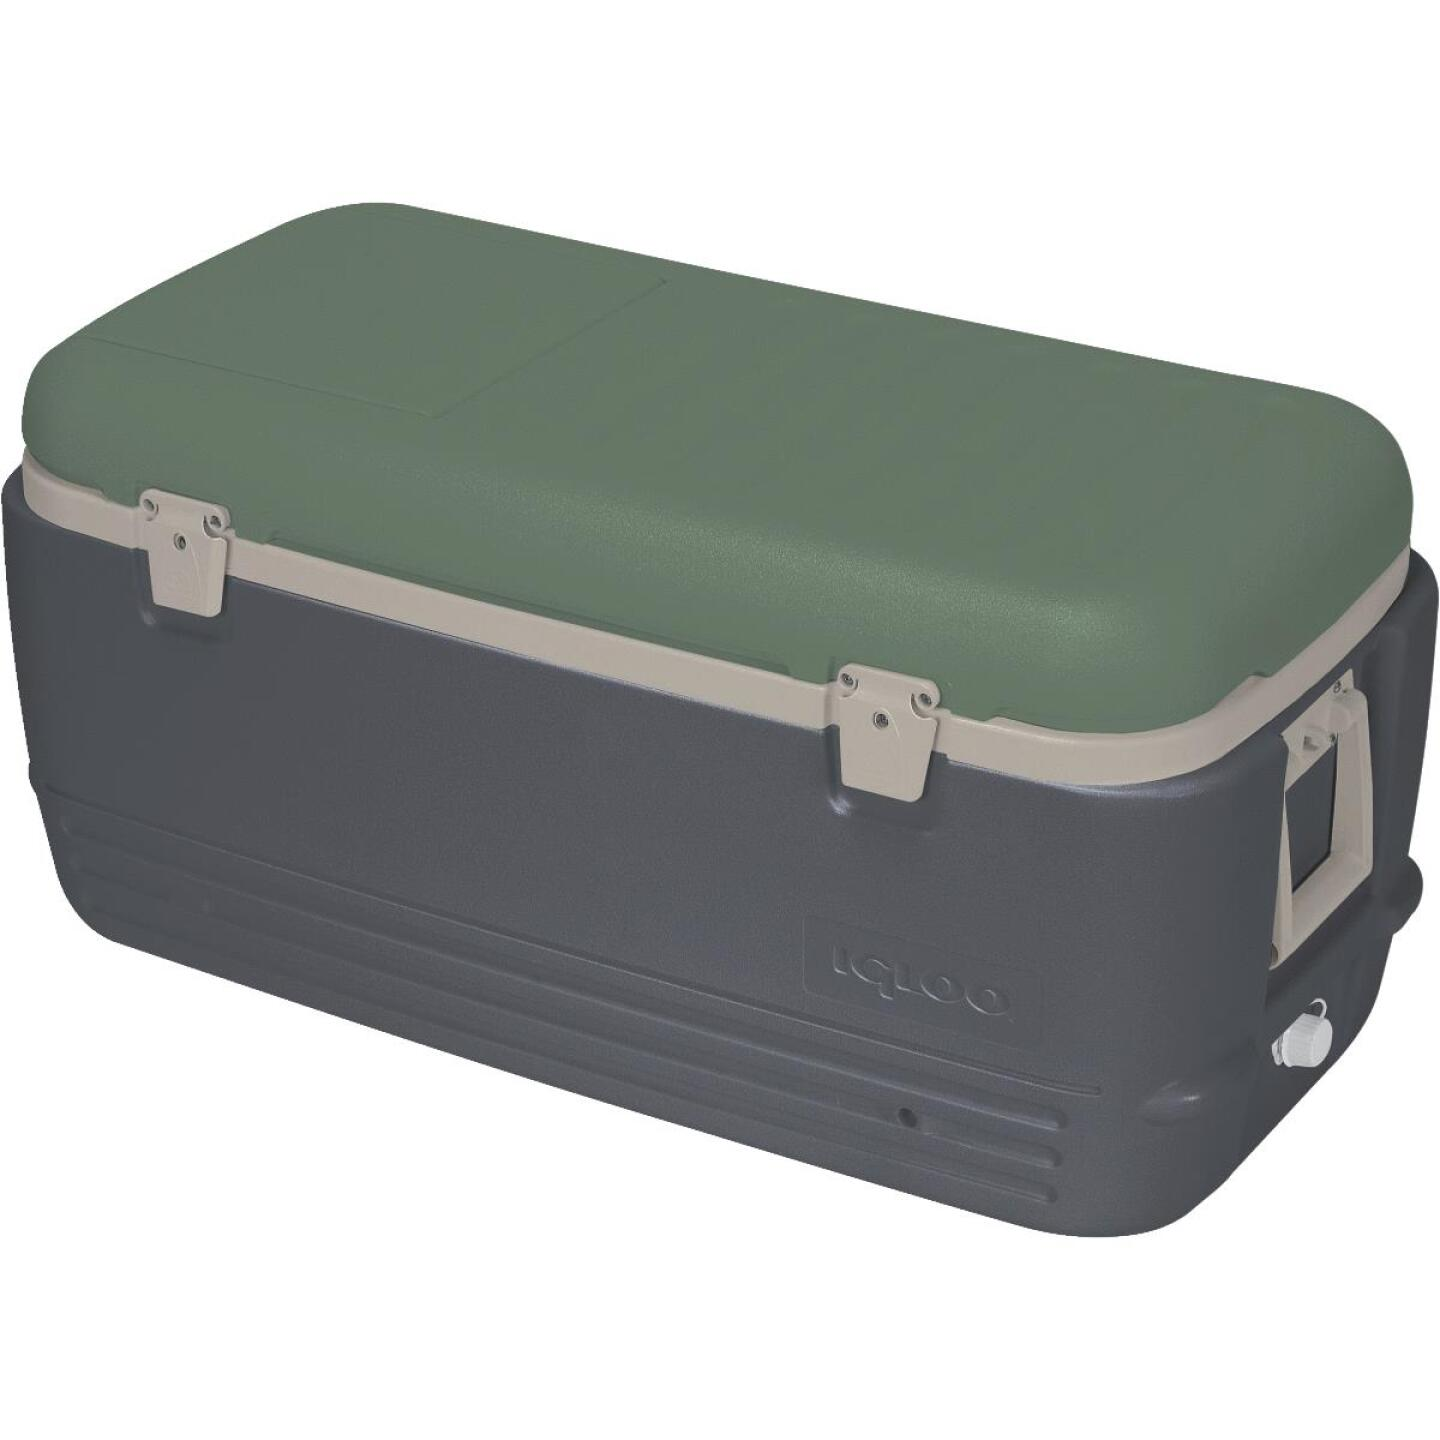 Igloo Sportsman 100 Qt. Ice Chest Cooler, Gray Image 1